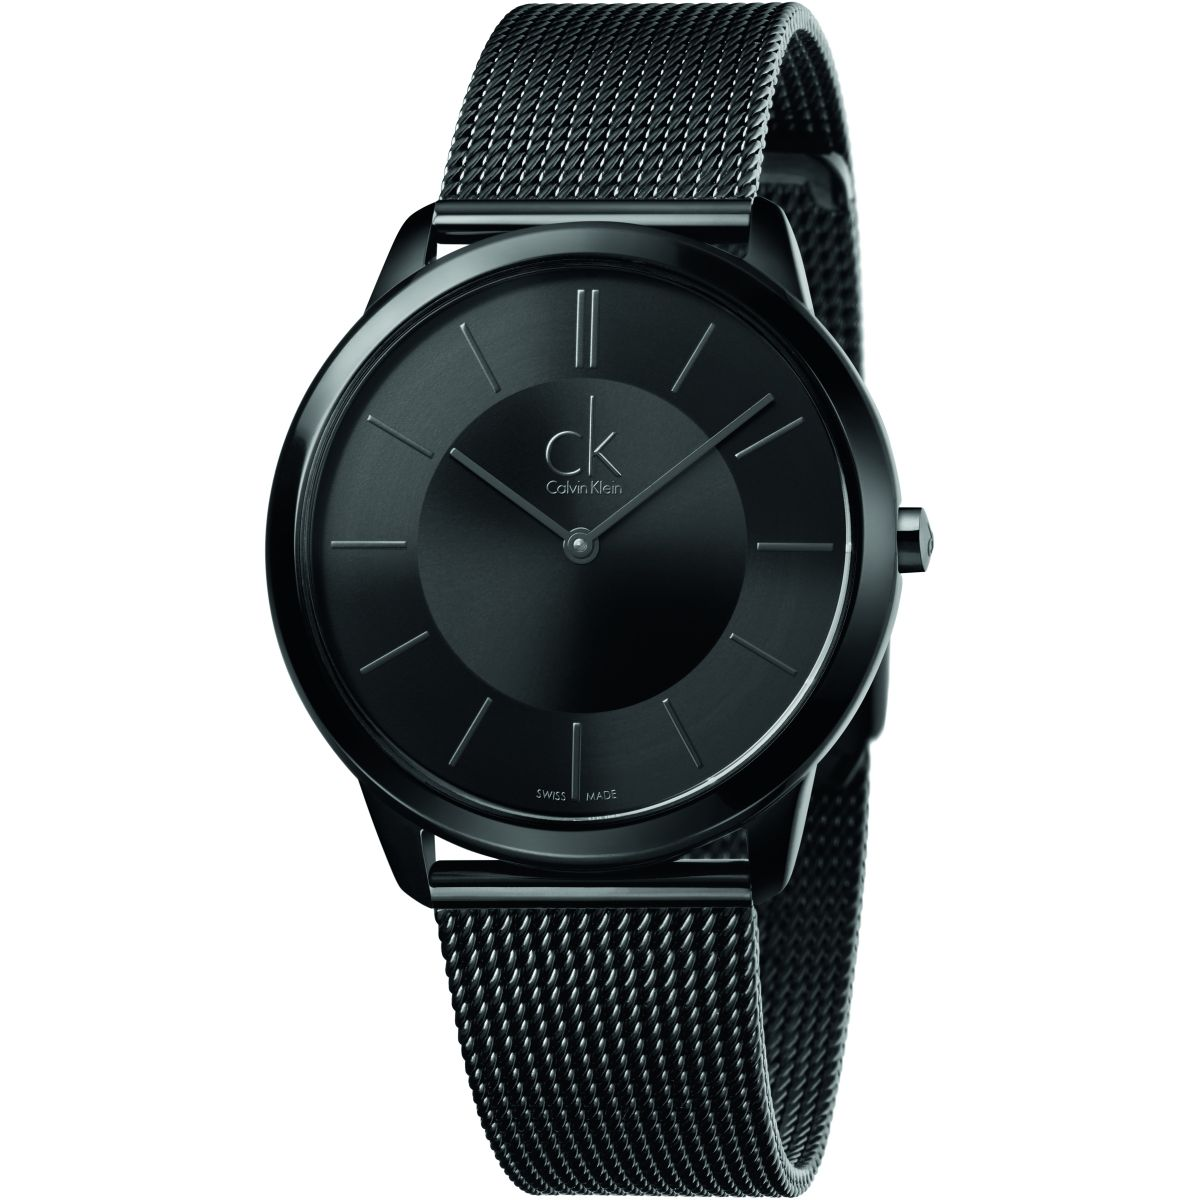 p goldsmiths watches context mens dive watch gucci